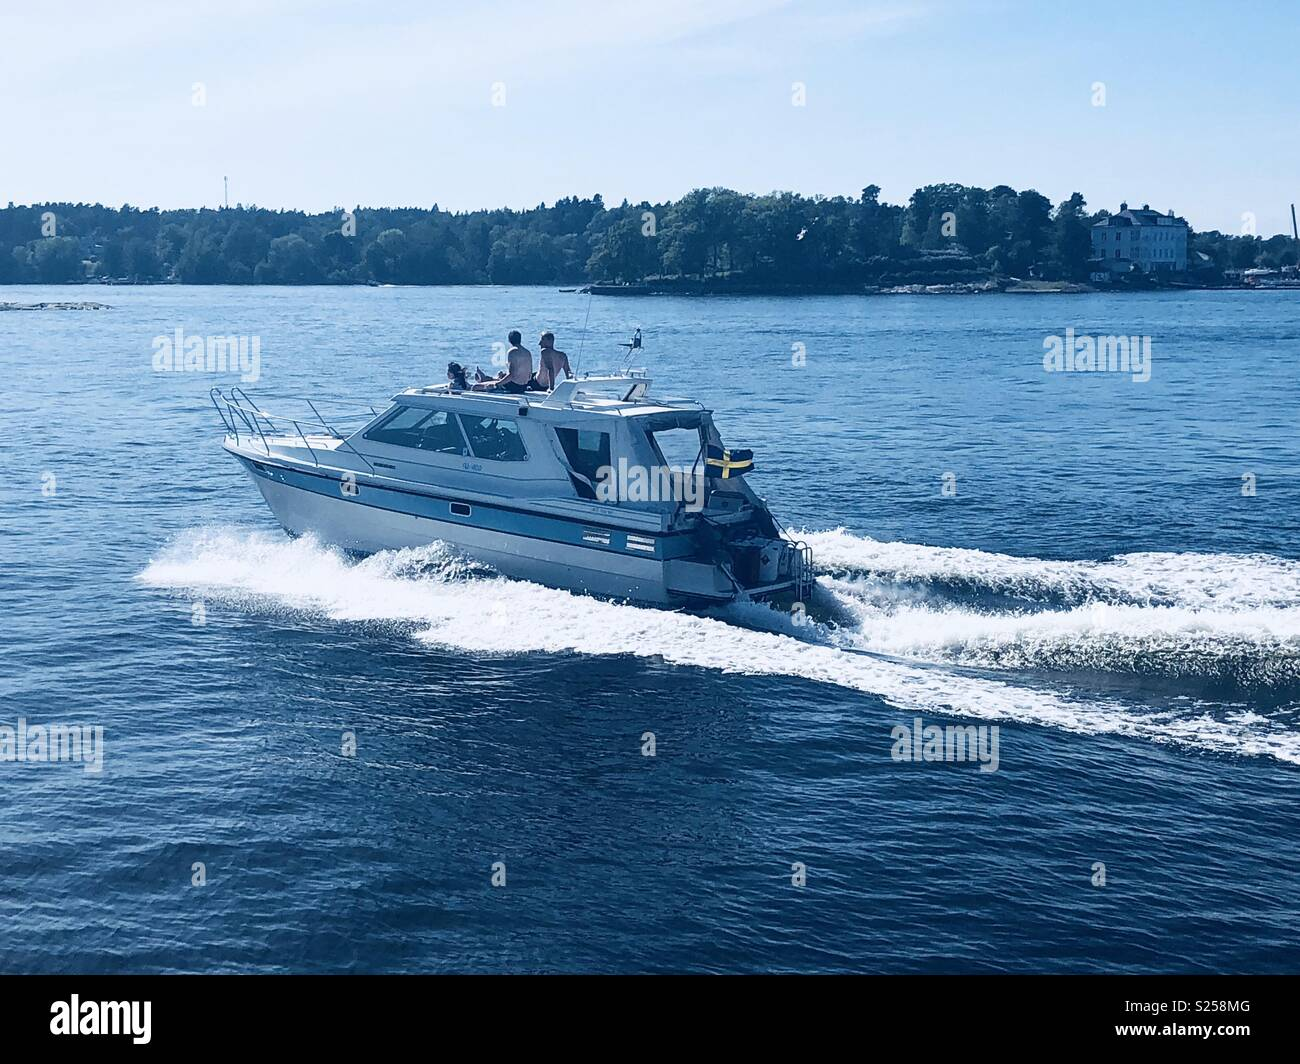 Swedish speed boat in the Stockholm archipelago with people lounging on the top of the boat - Stock Image